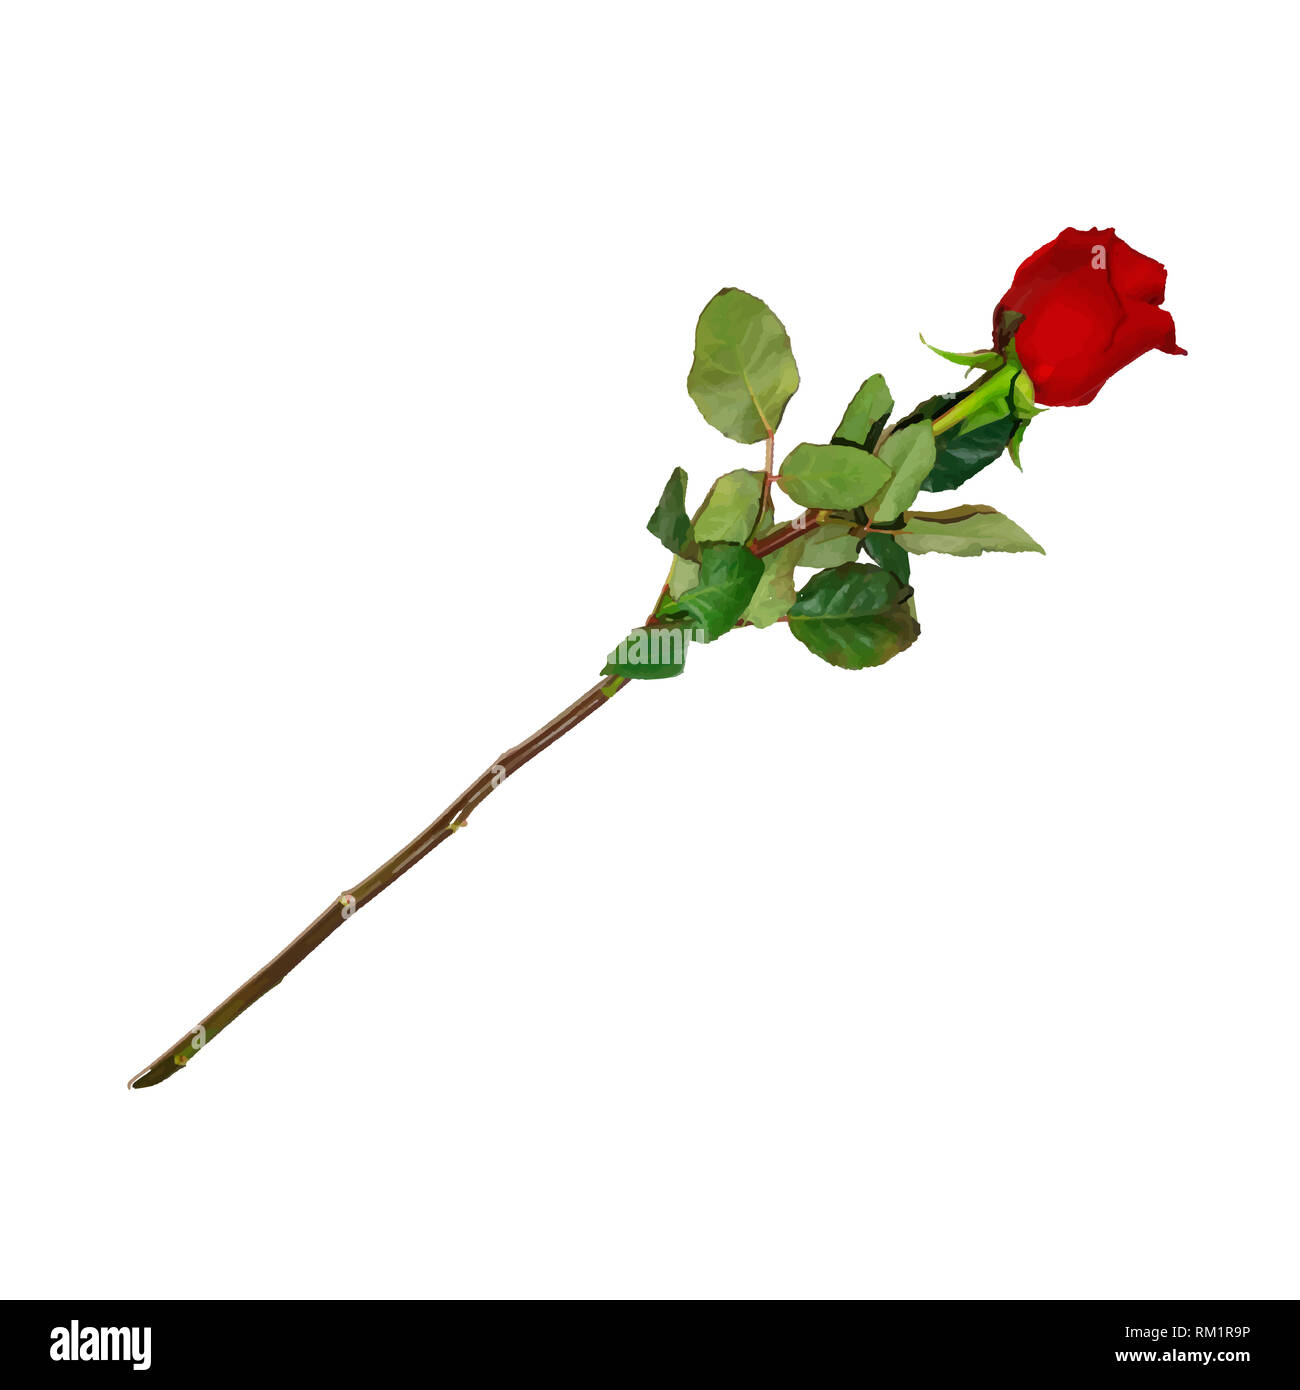 Photo Realistic, Highly Detailed Flower of Red Rose on Long Stem Isolated on White Background. Beautiful Bud of Ruby Rose with Leaves. Clip Art For Va - Stock Image